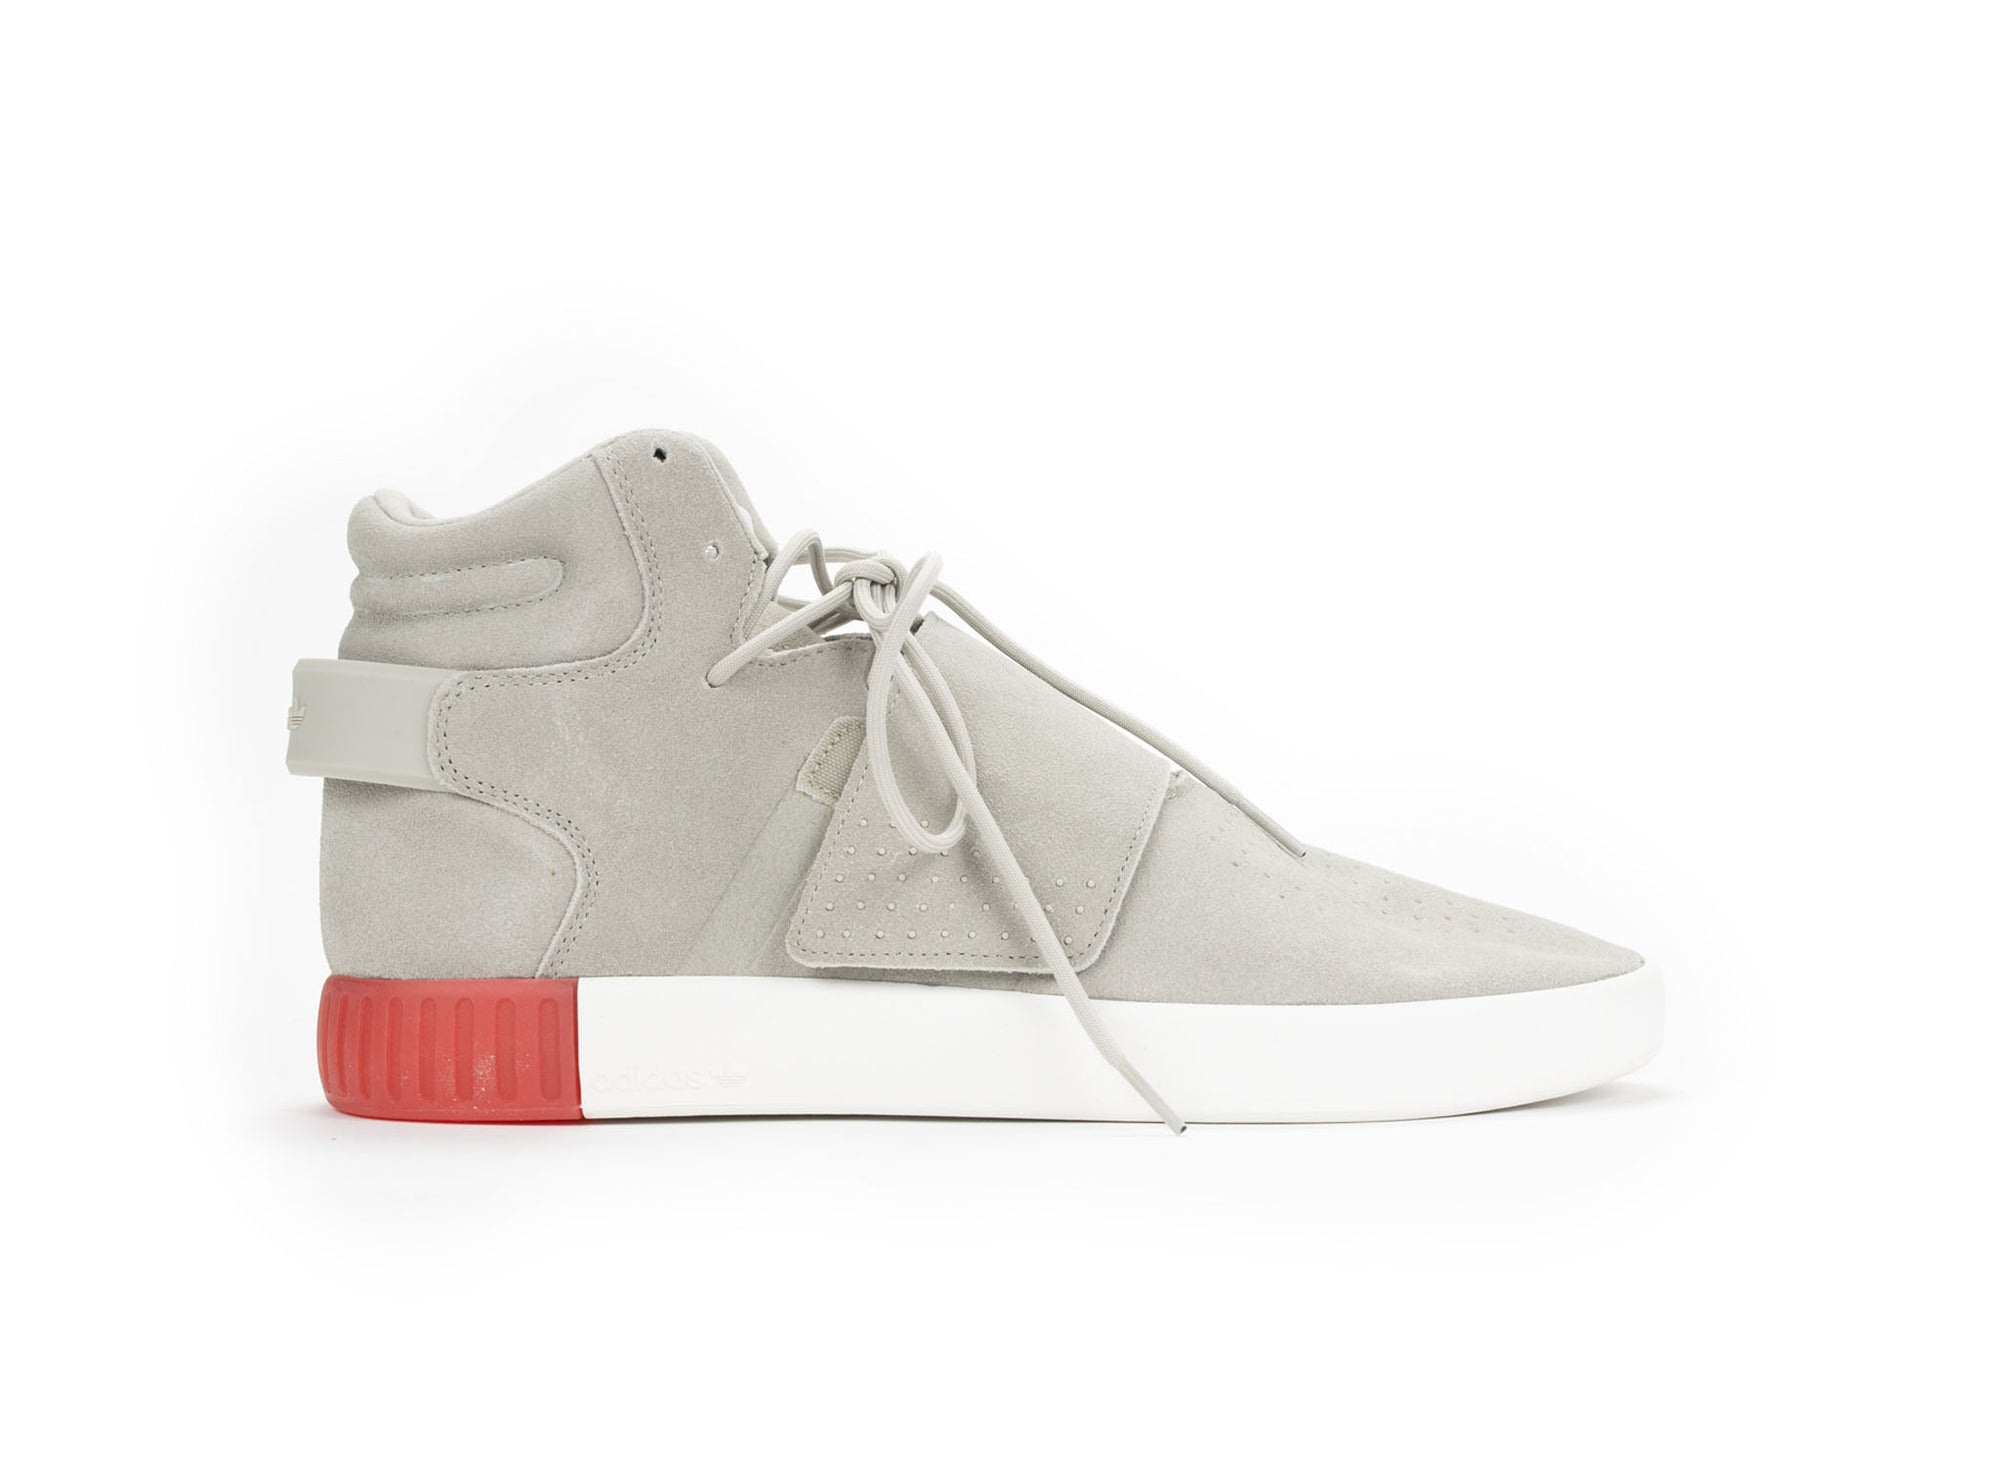 new style 8d25f 01964 ADIDAS TUBULAR INVADER STRAP